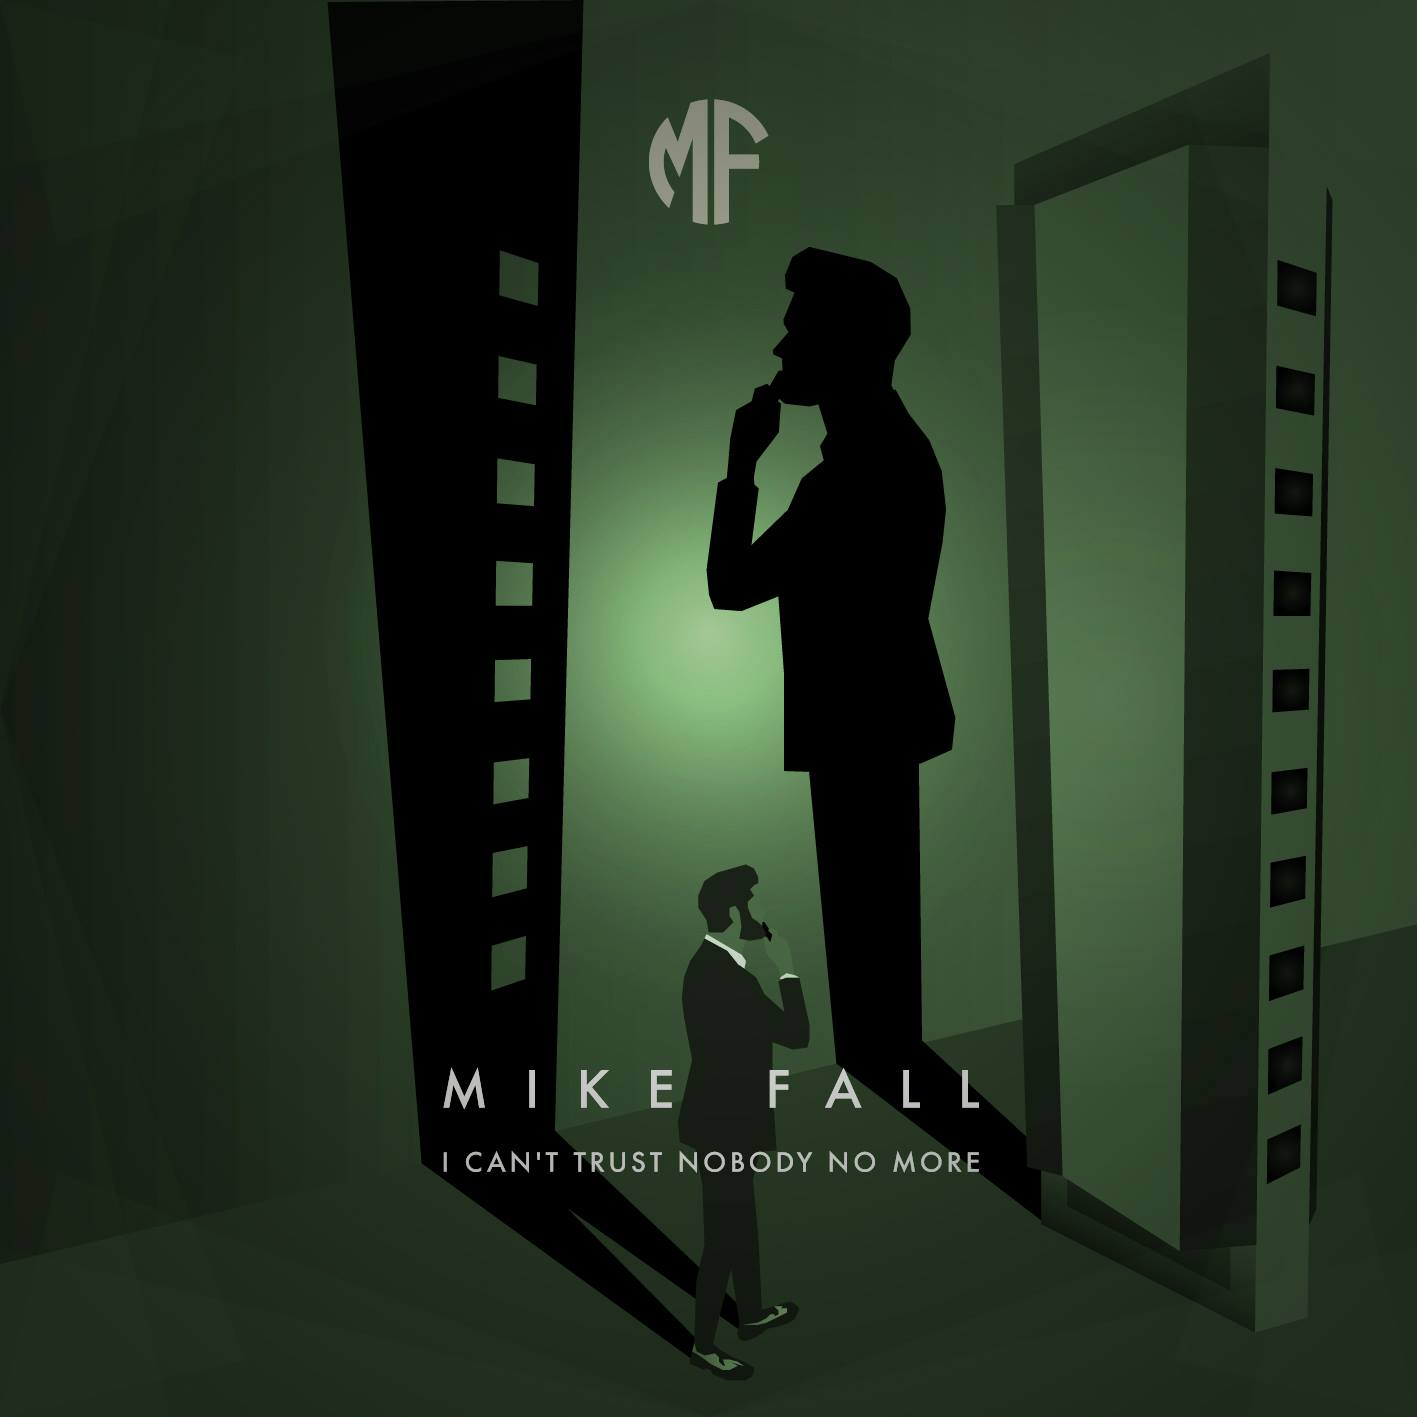 Mike Fall - I Can't Trust Nobody No More [SINGLE]